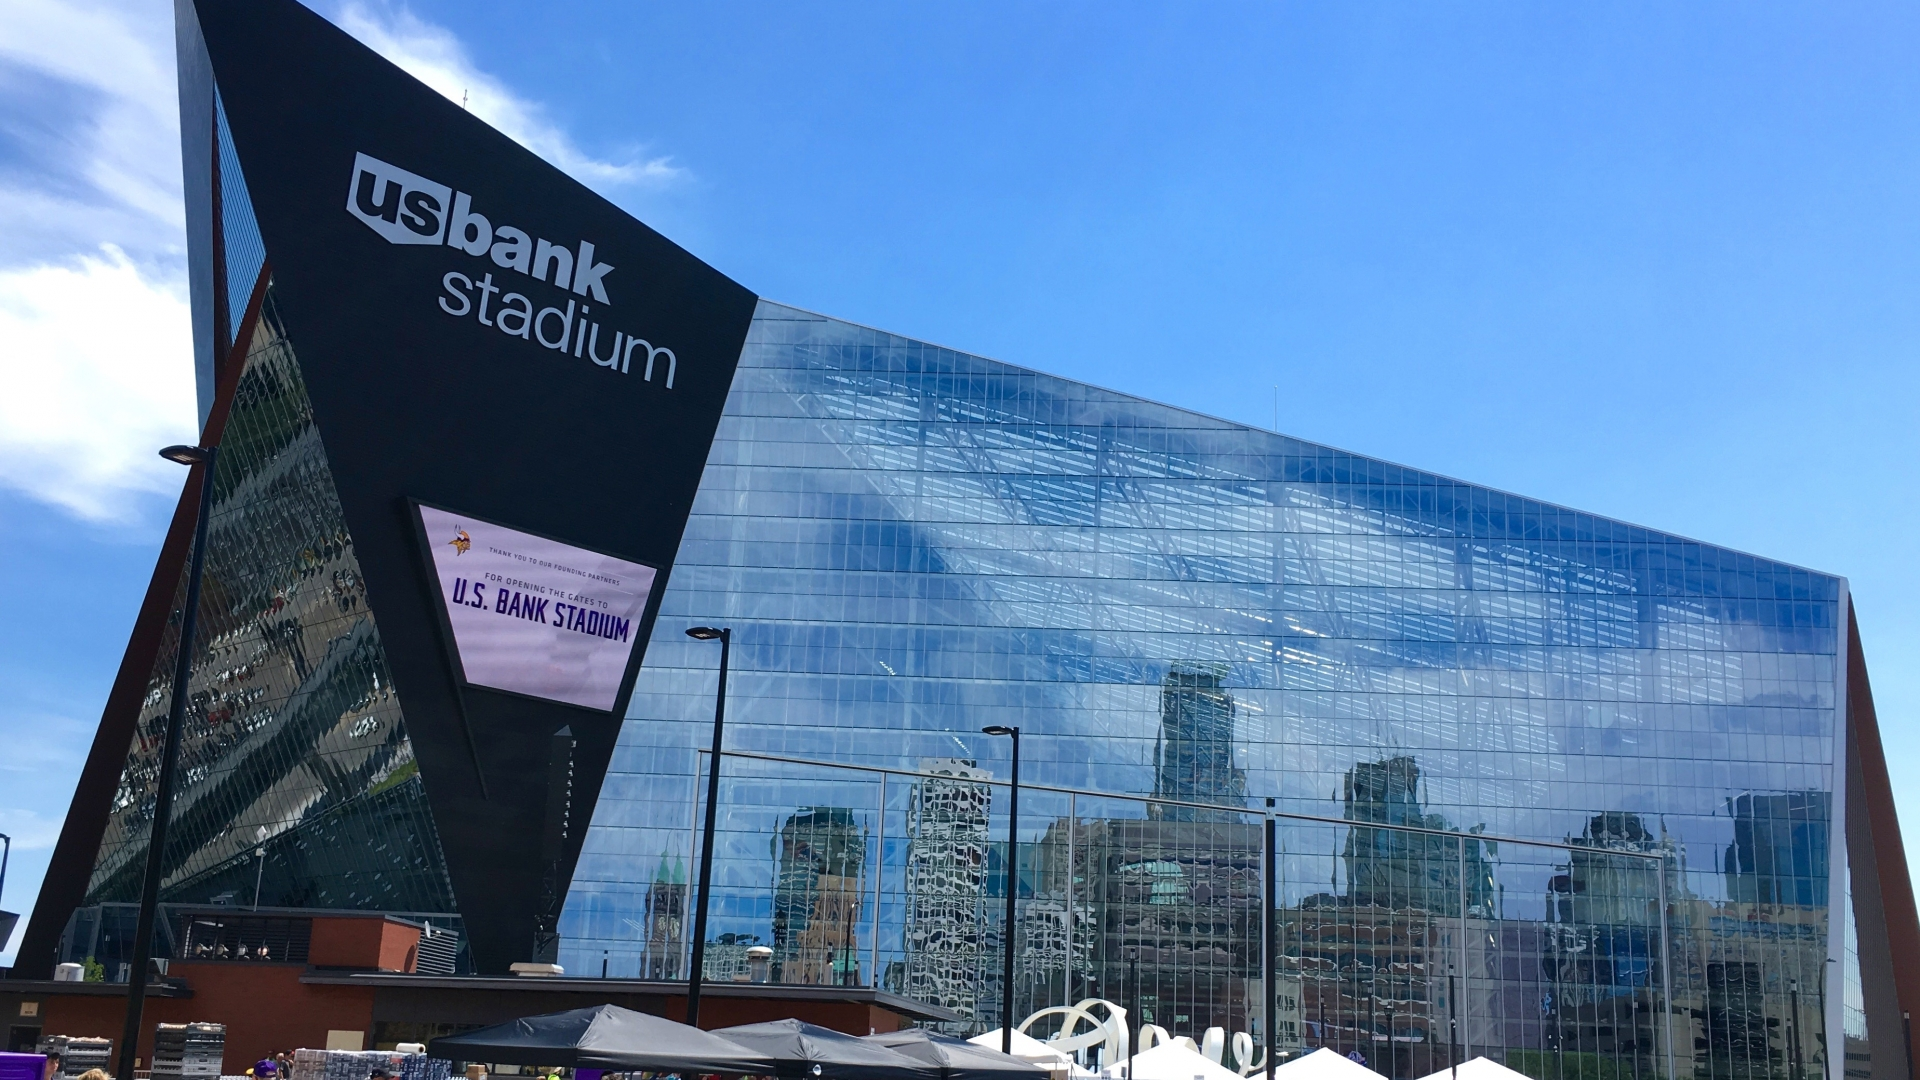 The recently completed U.S. Bank Stadium in Minneapolis will host Super Bowl LII in 2018